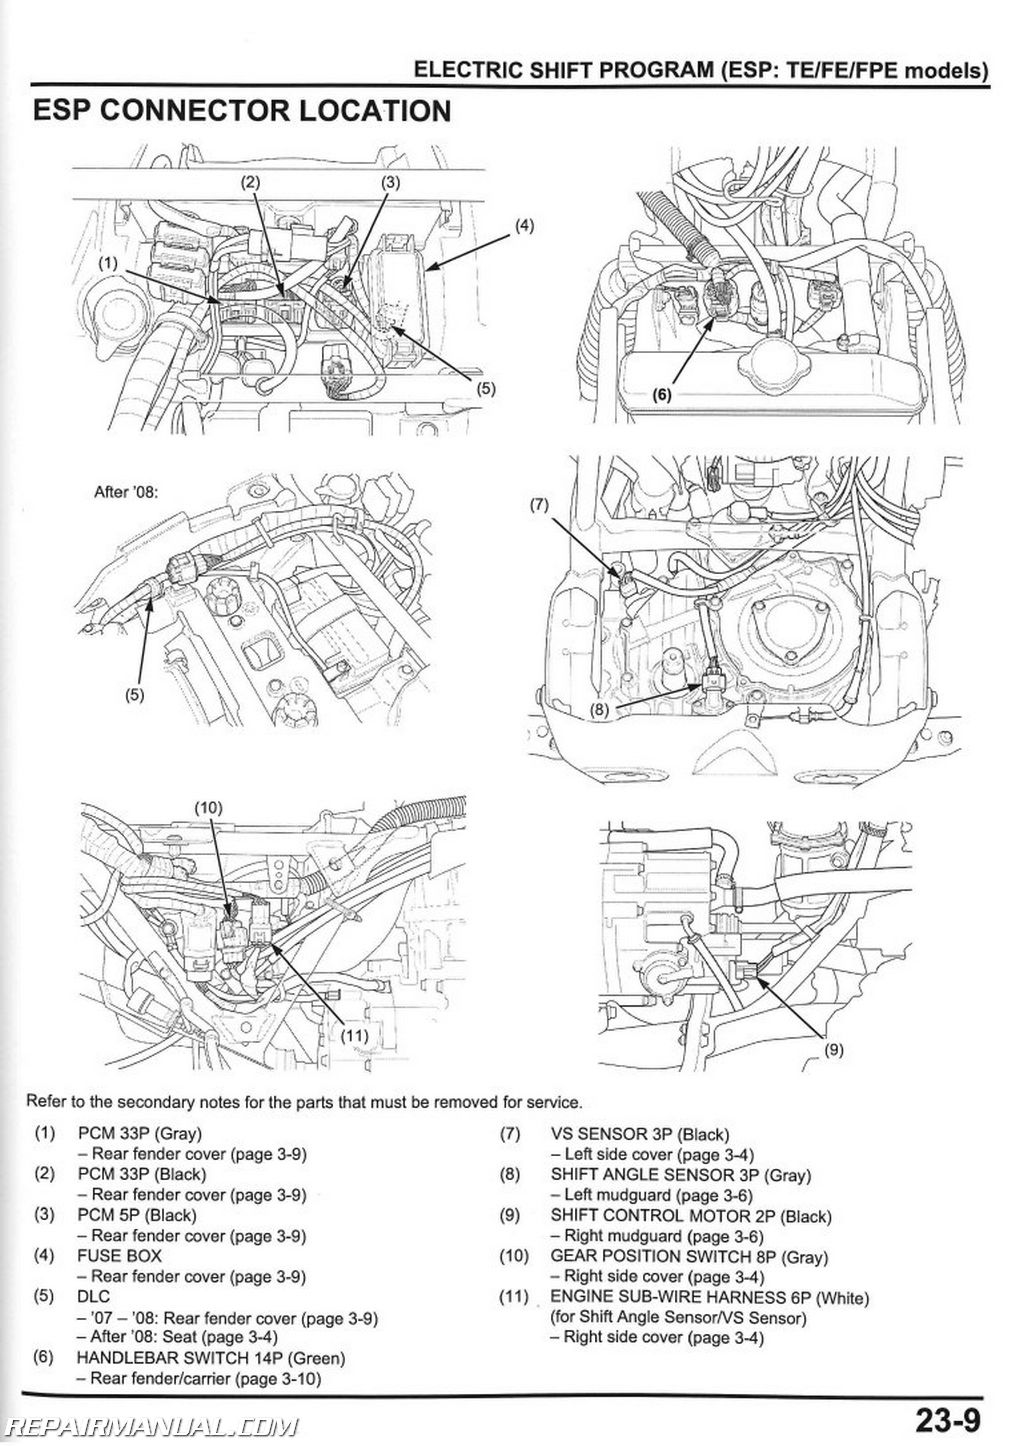 Honda 400 Foreman Wiring Diagrams furthermore Polaris Ranger Oil Filter Location together with Yamaha Stx Wiring Diagram besides 1986 Fourtrax 4x4 Wiring Diagram additionally Honda Atv Engine Diagram Sportrax. on honda fourtrax 300 carburetor diagram